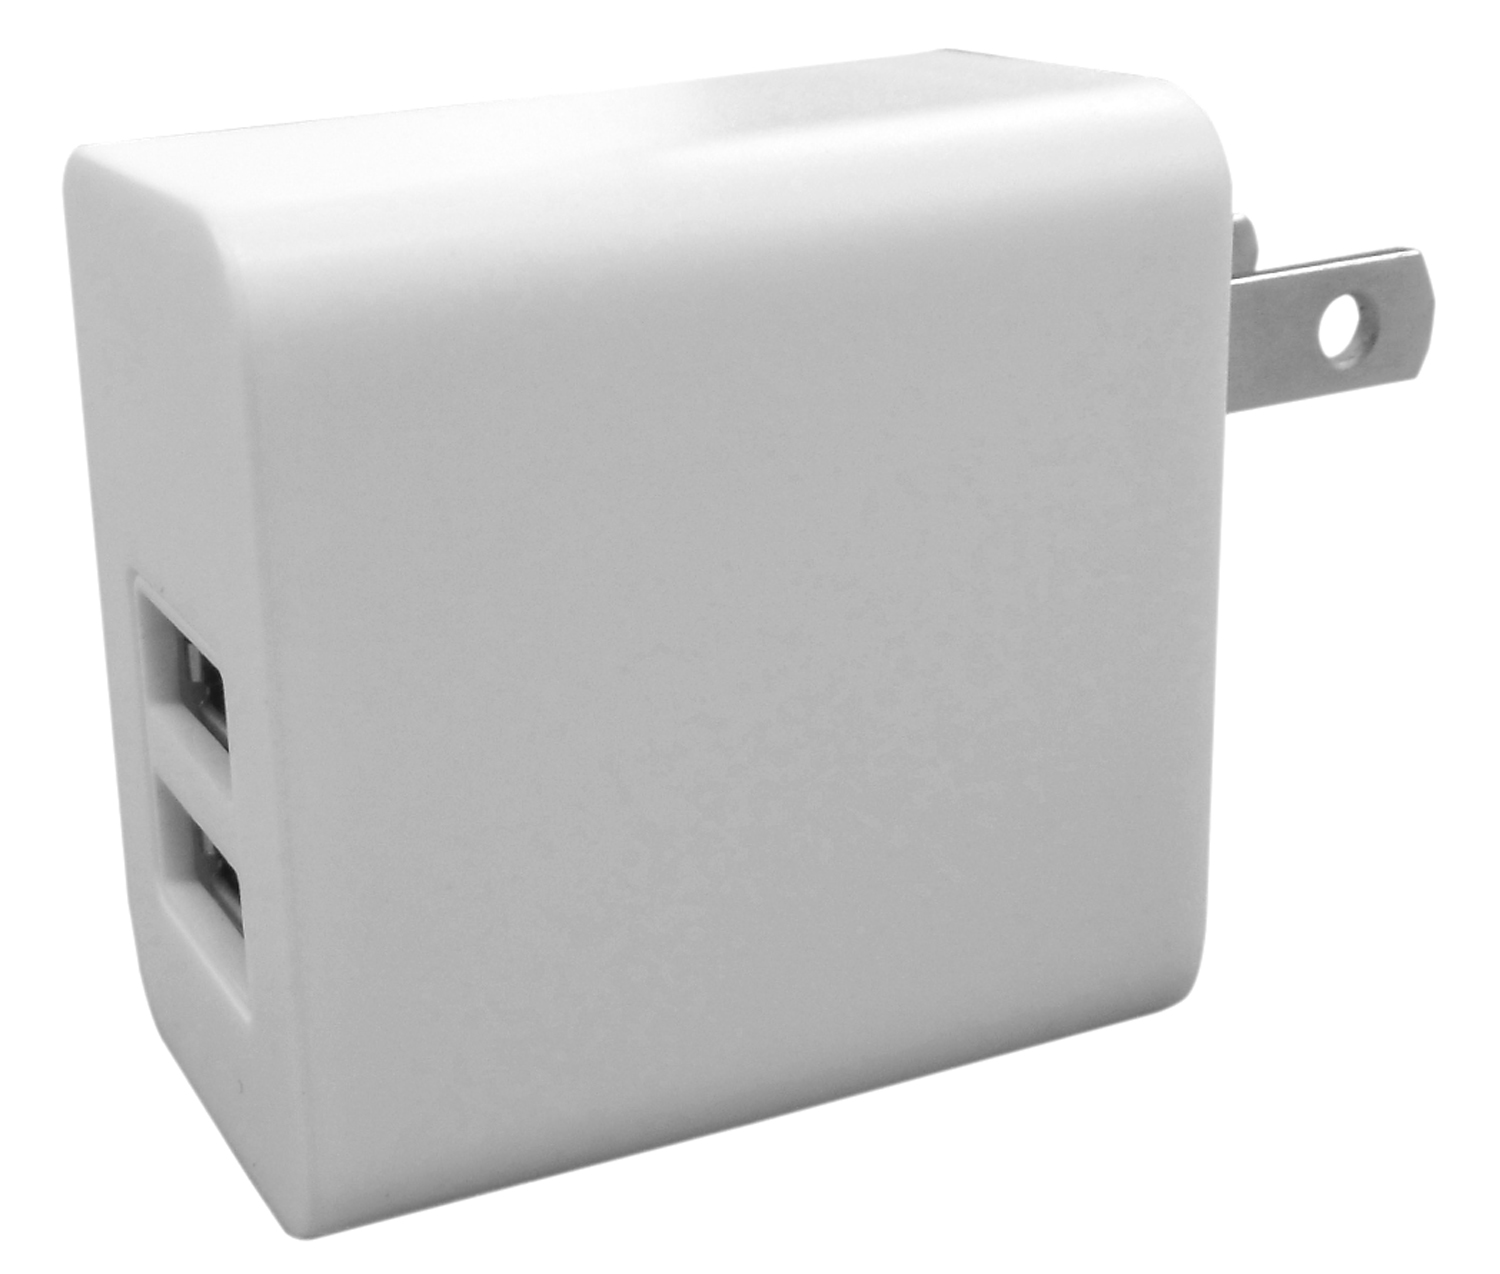 WHITE AC CHARGER WITH TWO USB PORTS. CHARGES SMALL ELECTRONICS THAT USE USB CABLE